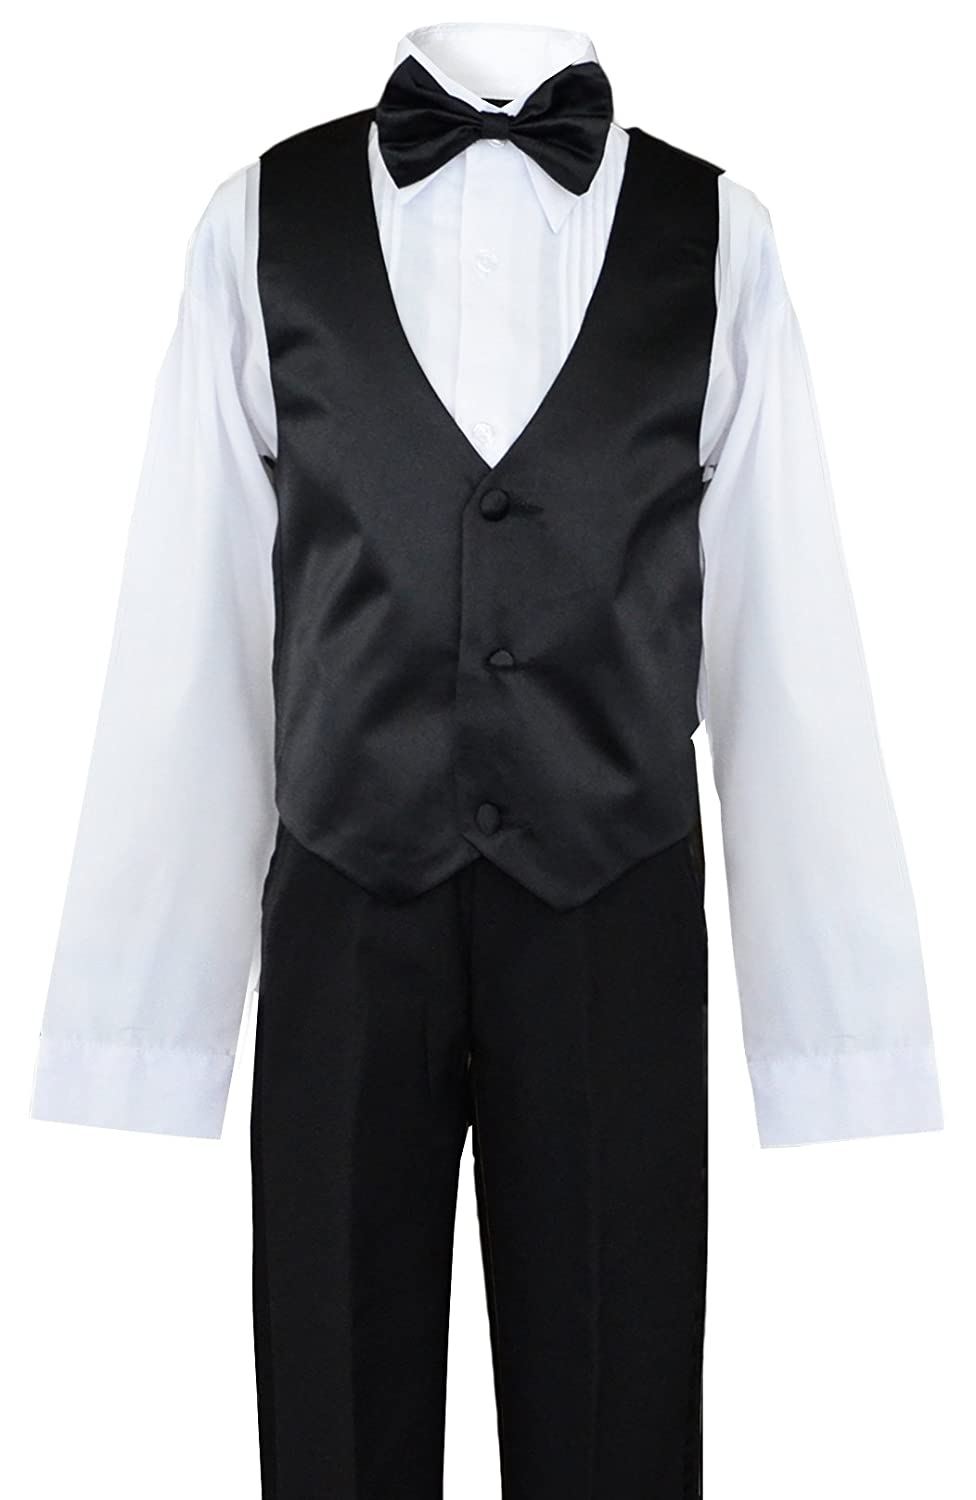 Formal Tuxedo Dress Suit in black with a Fuchsia Long Neck Tie